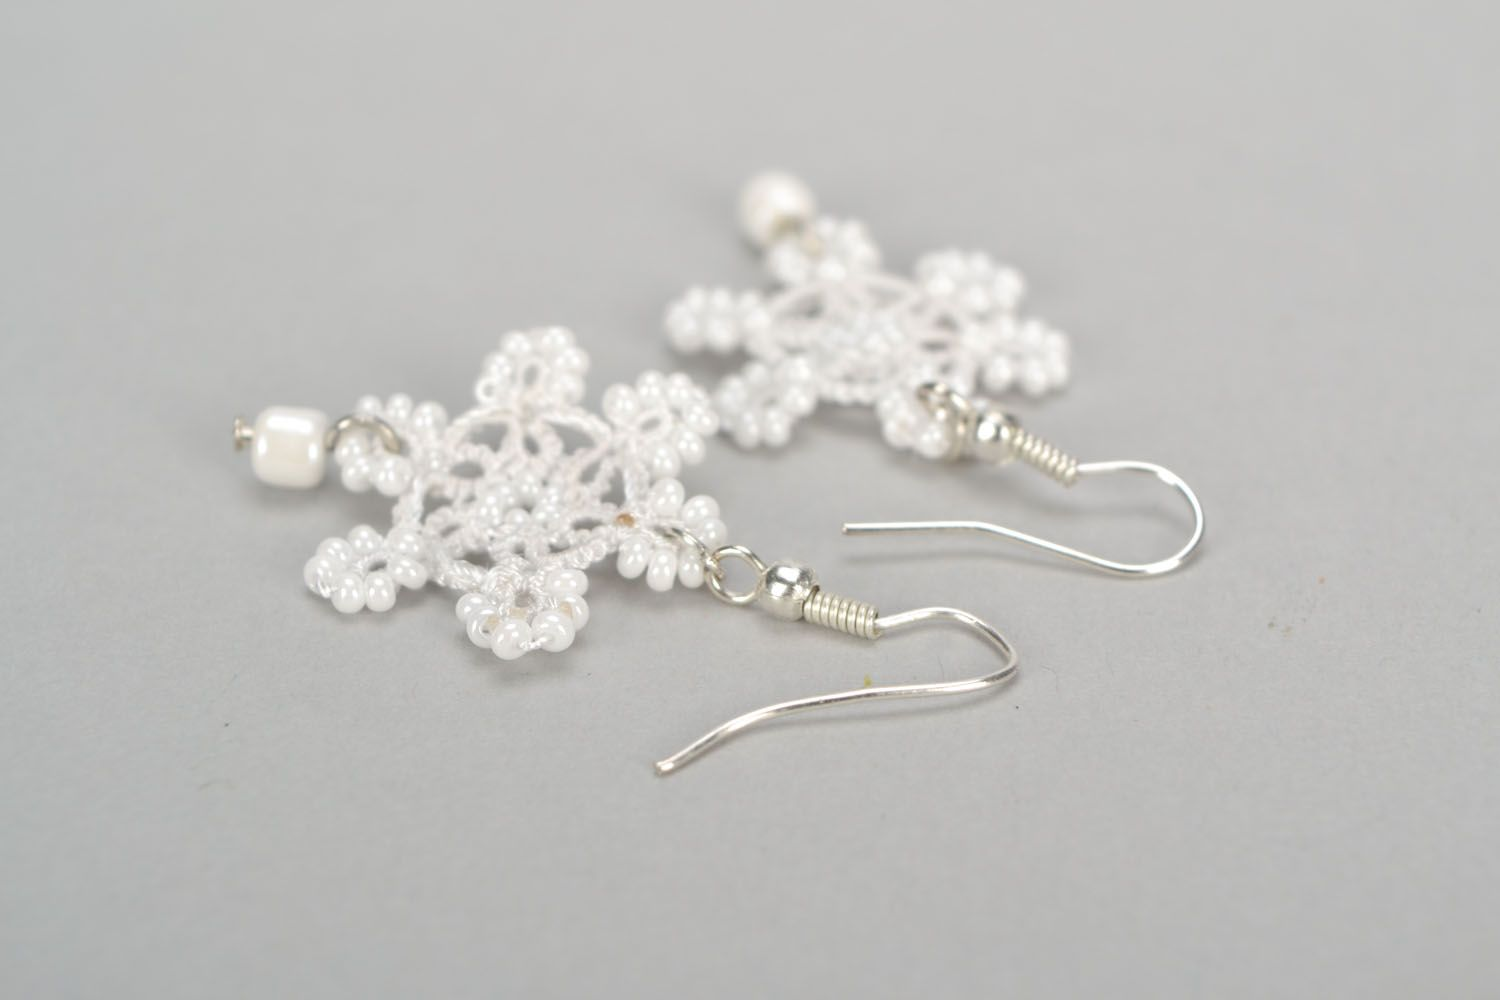 Earrings made using tatting technique Snowflakes photo 4